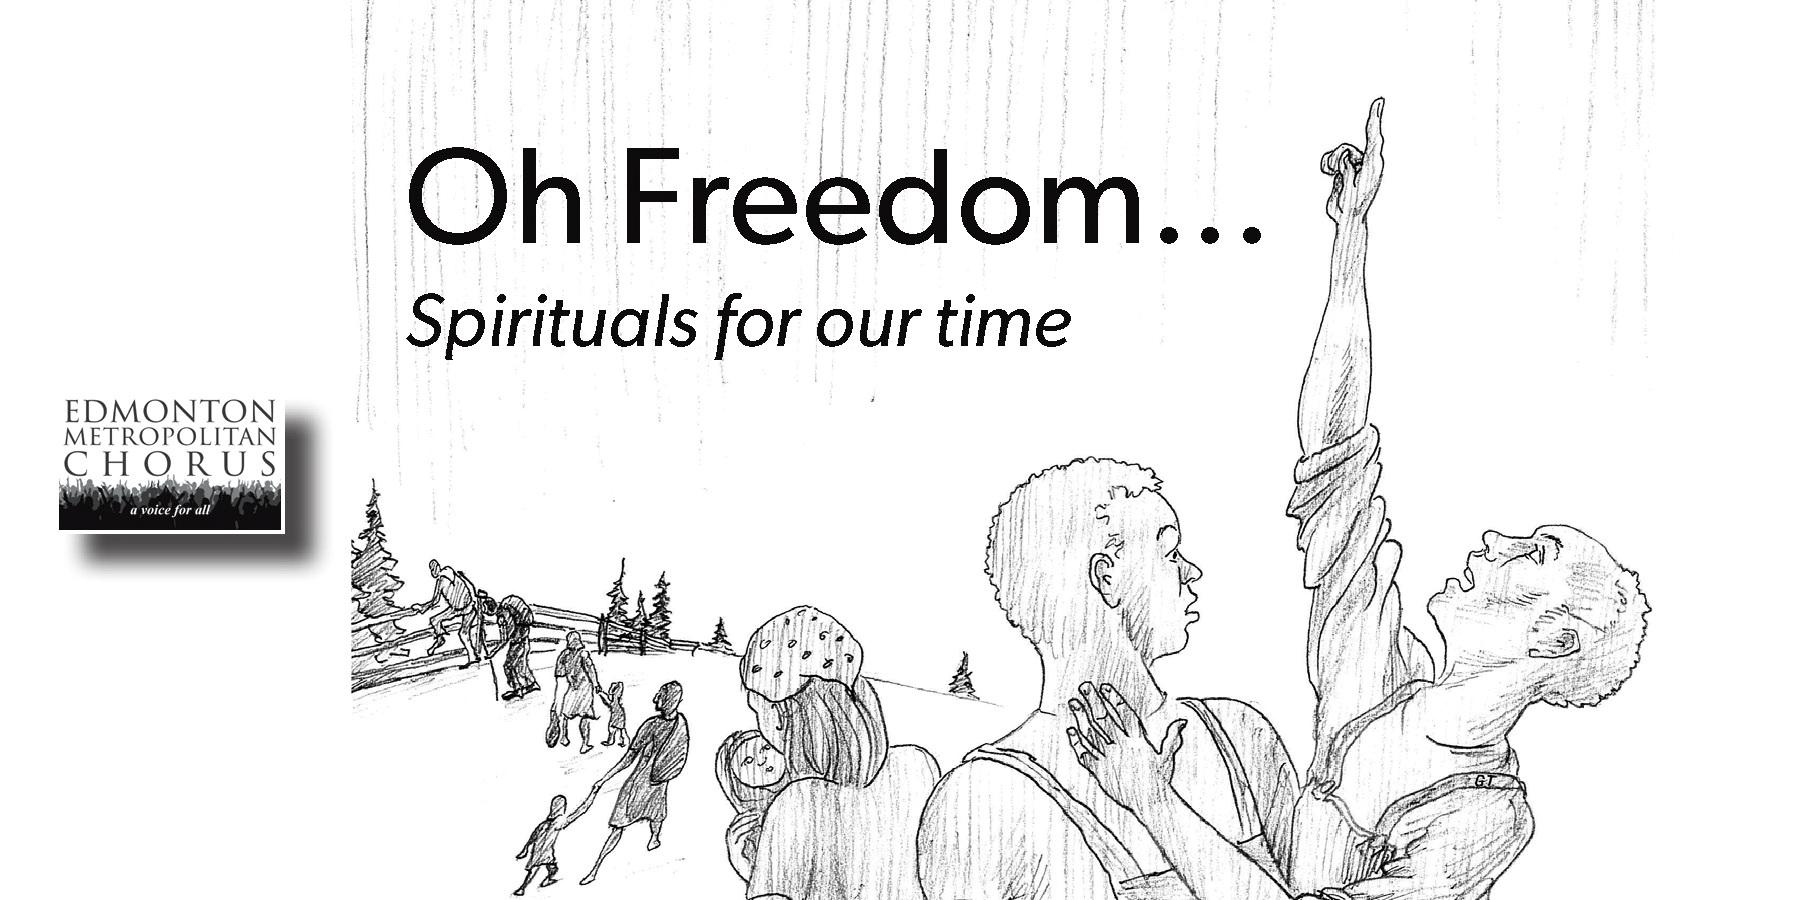 Oh Freedom... Spirituals for our time